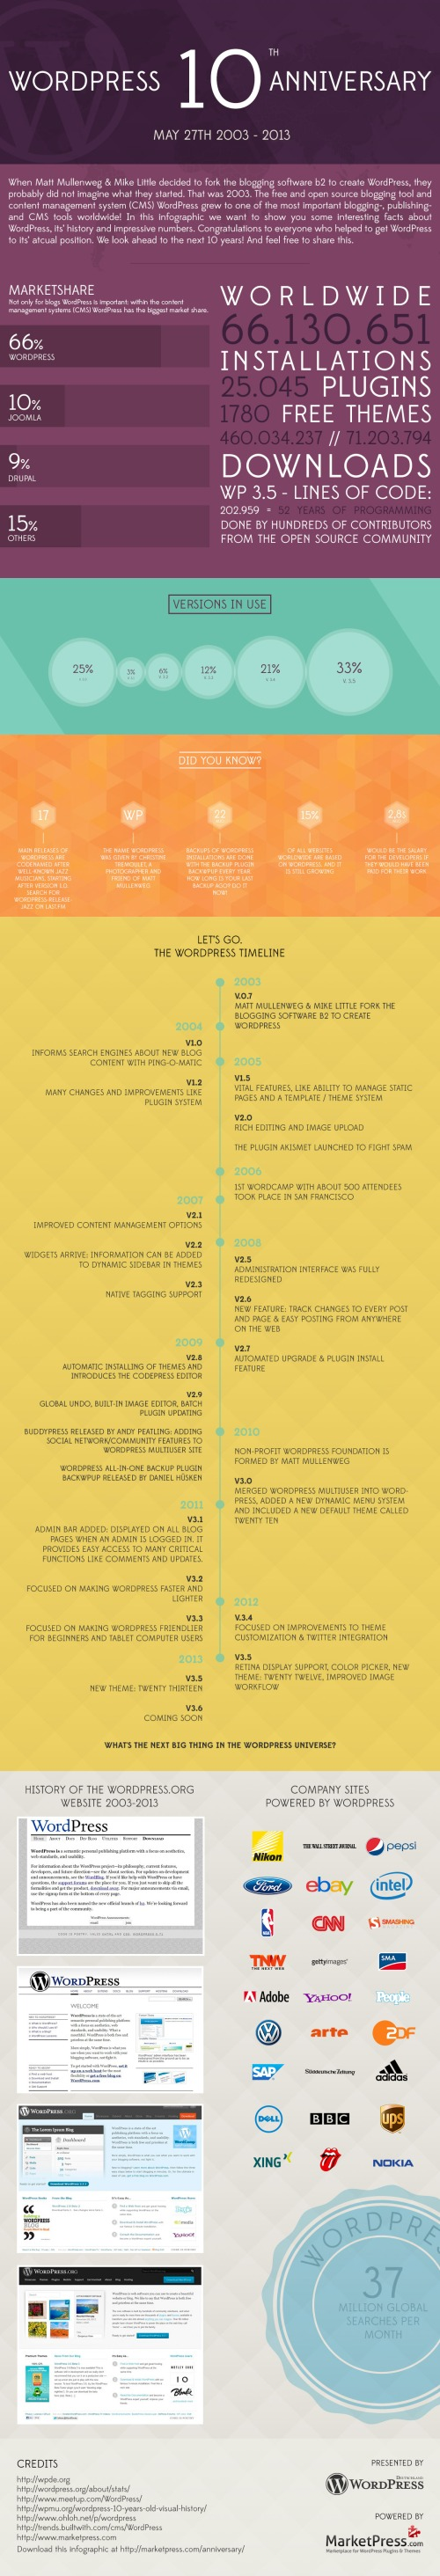 WordPress_10_years_anniversary_Infographic_by_marketpressCOM